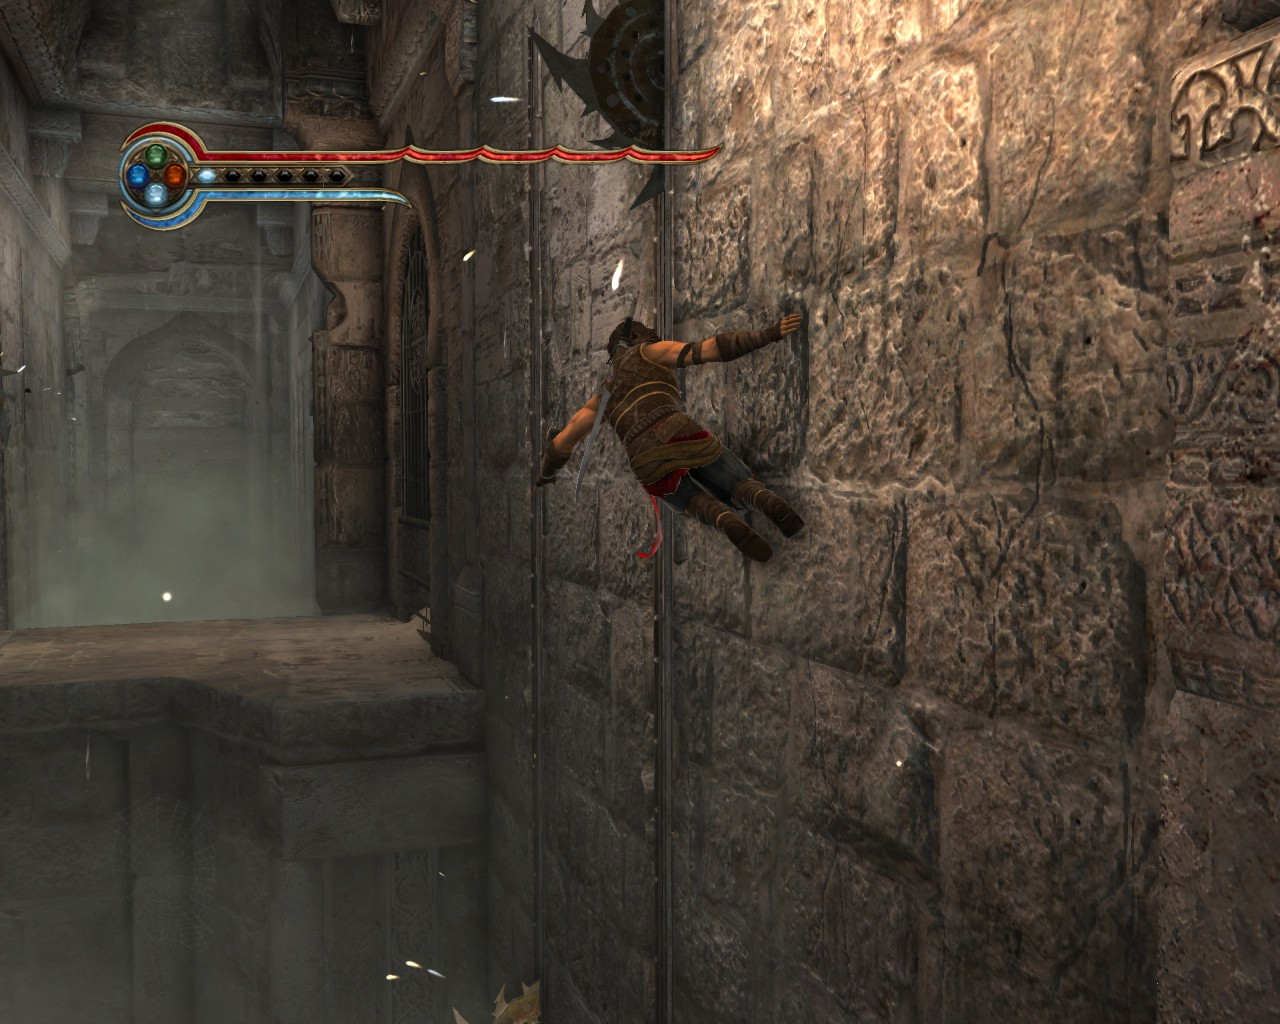 Prince of Persia 2014-06-03 23-37-19-87.jpg - Prince of Persia: The Forgotten Sands